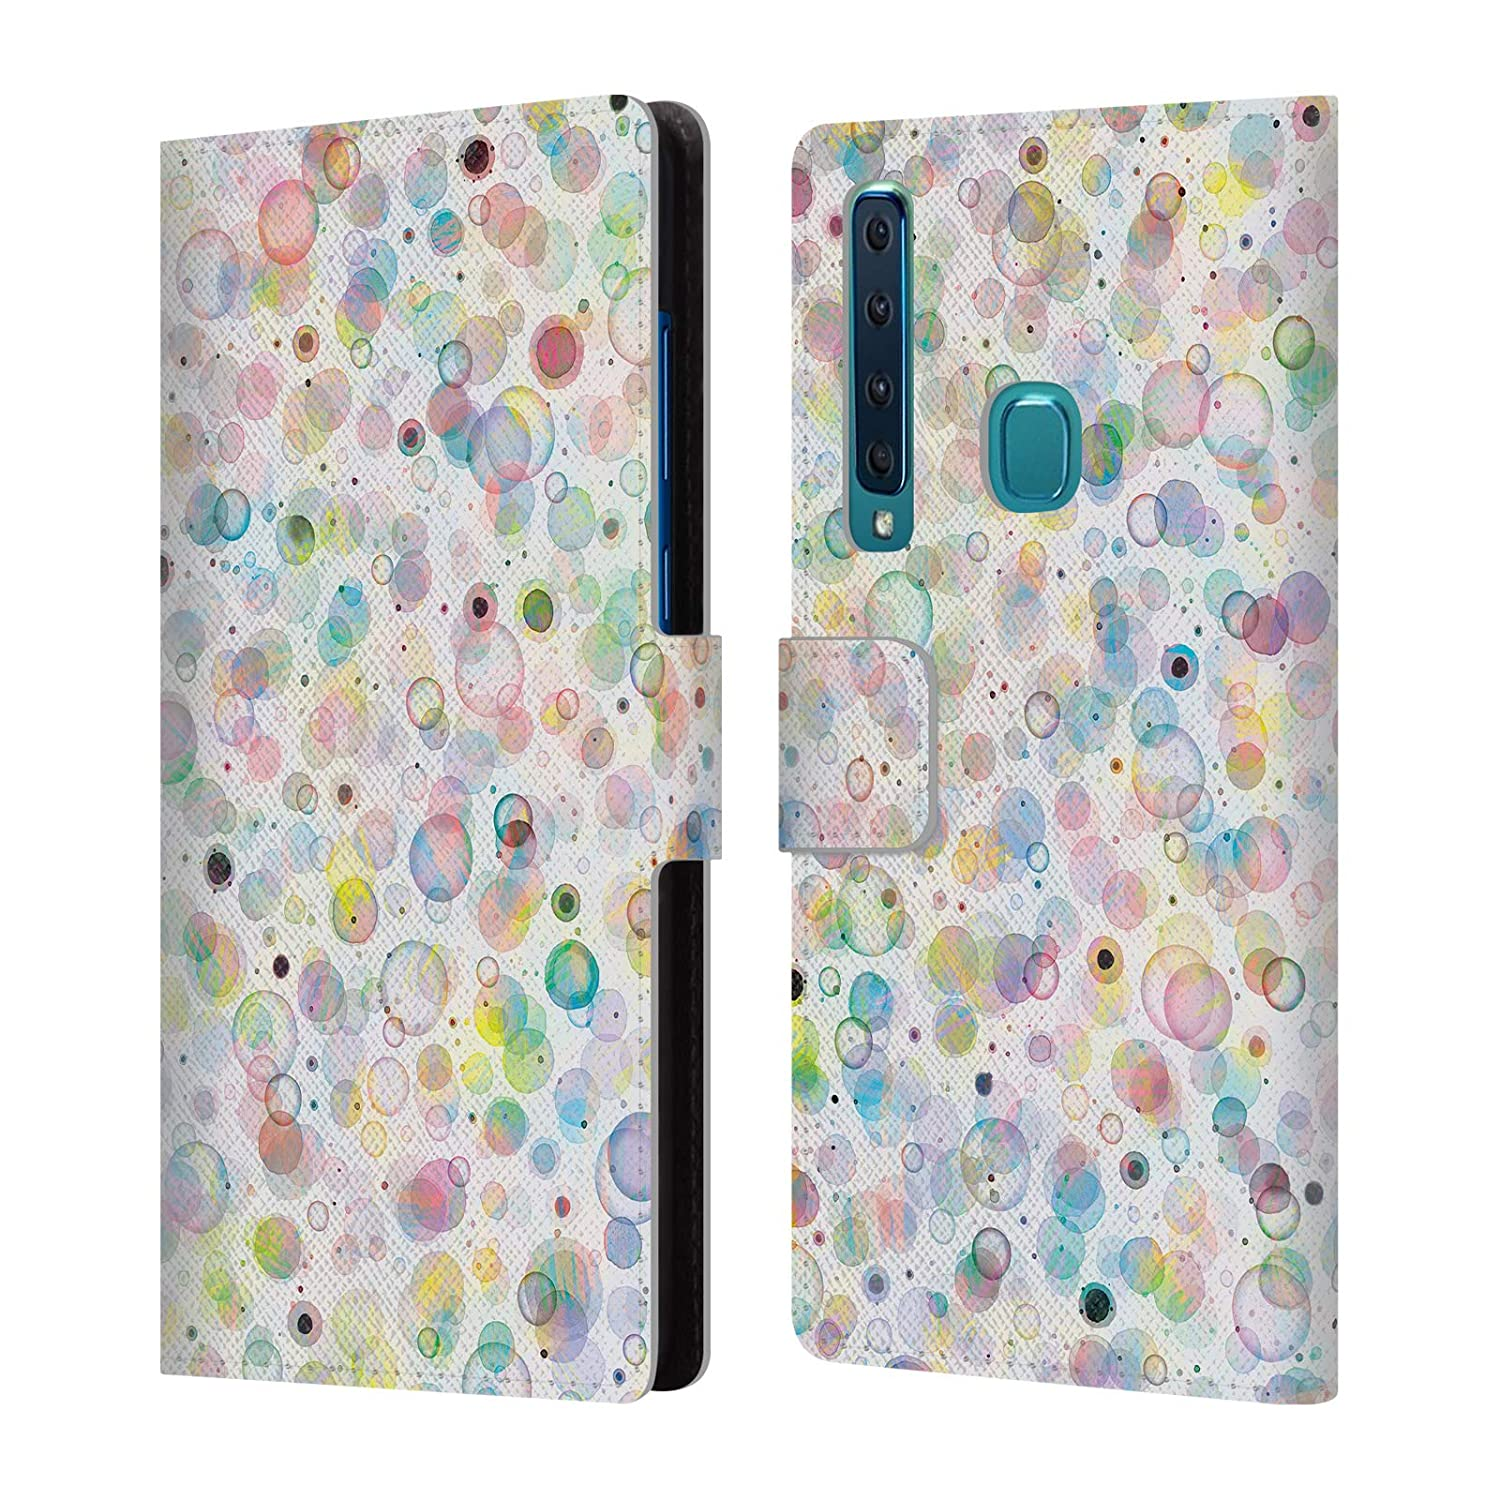 Amazon.com: Official Ninola Ultraviolet Bubbles Leather Book ...